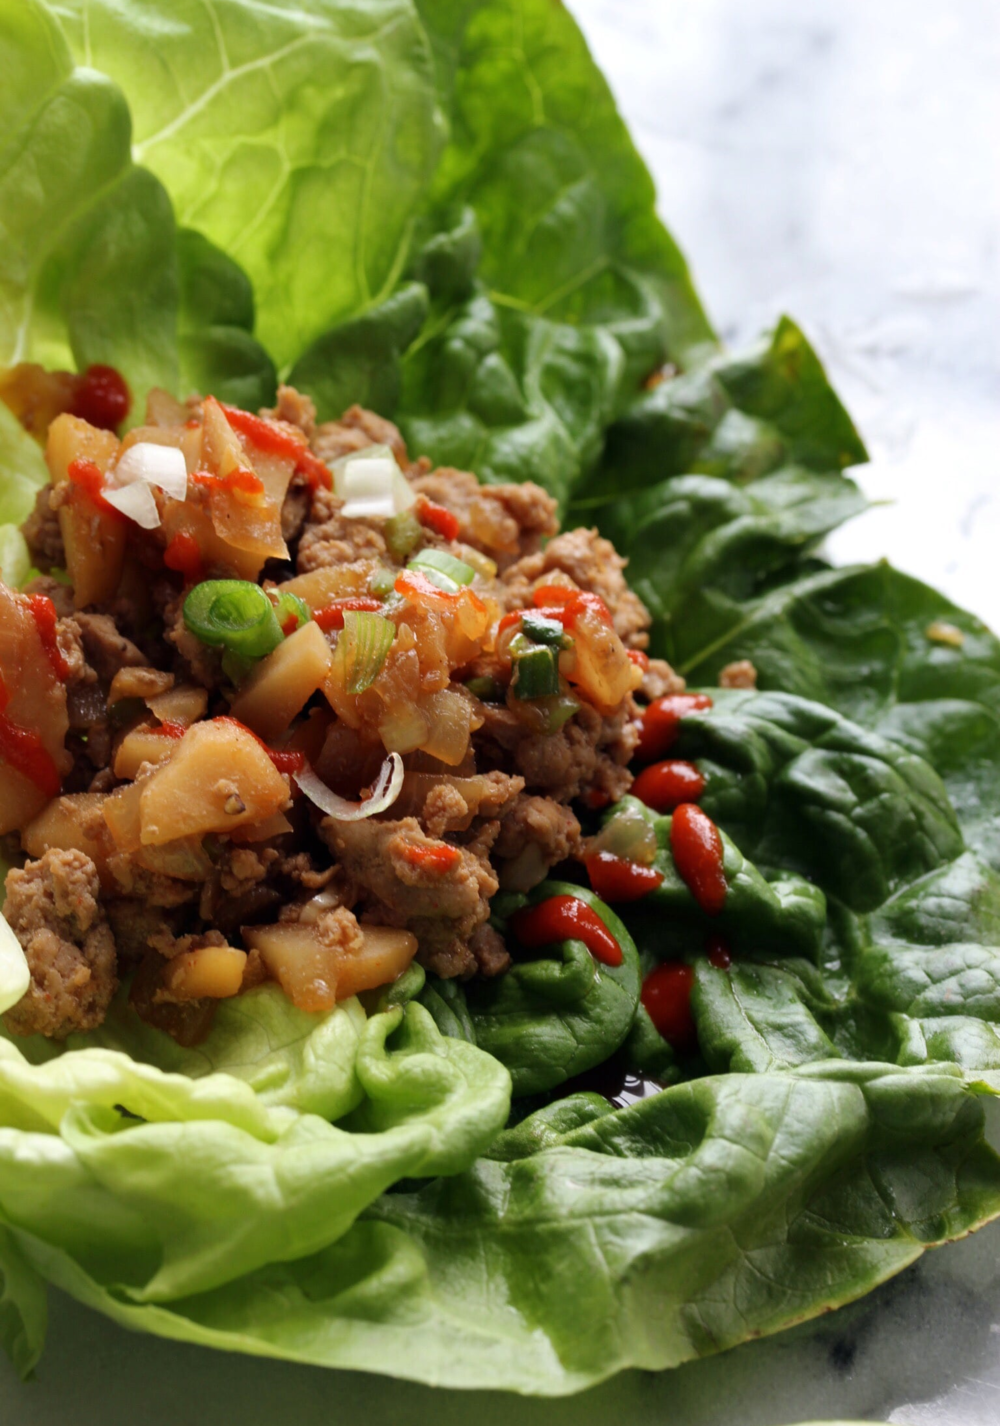 Chinese lettuce wraps - The Pastiche